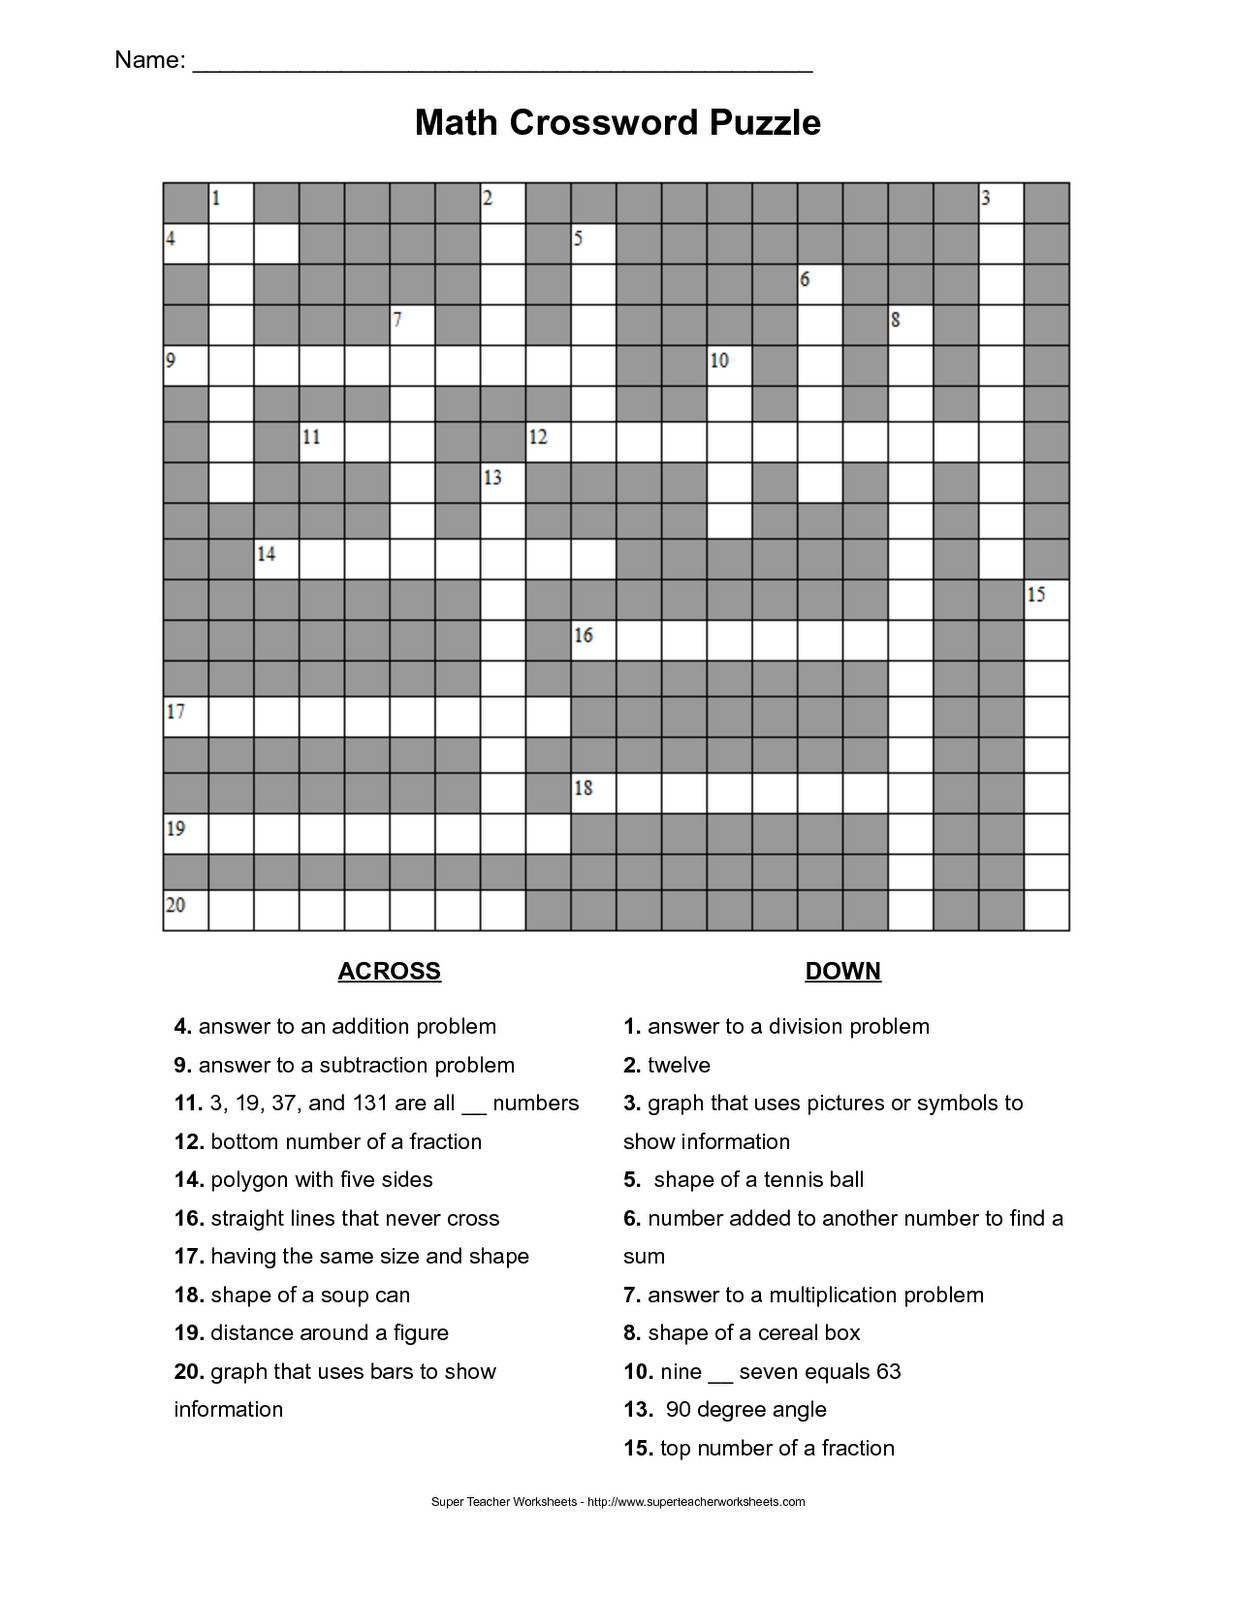 Math Word Search Puzzles Printable aprita – Free Math Puzzles Worksheets